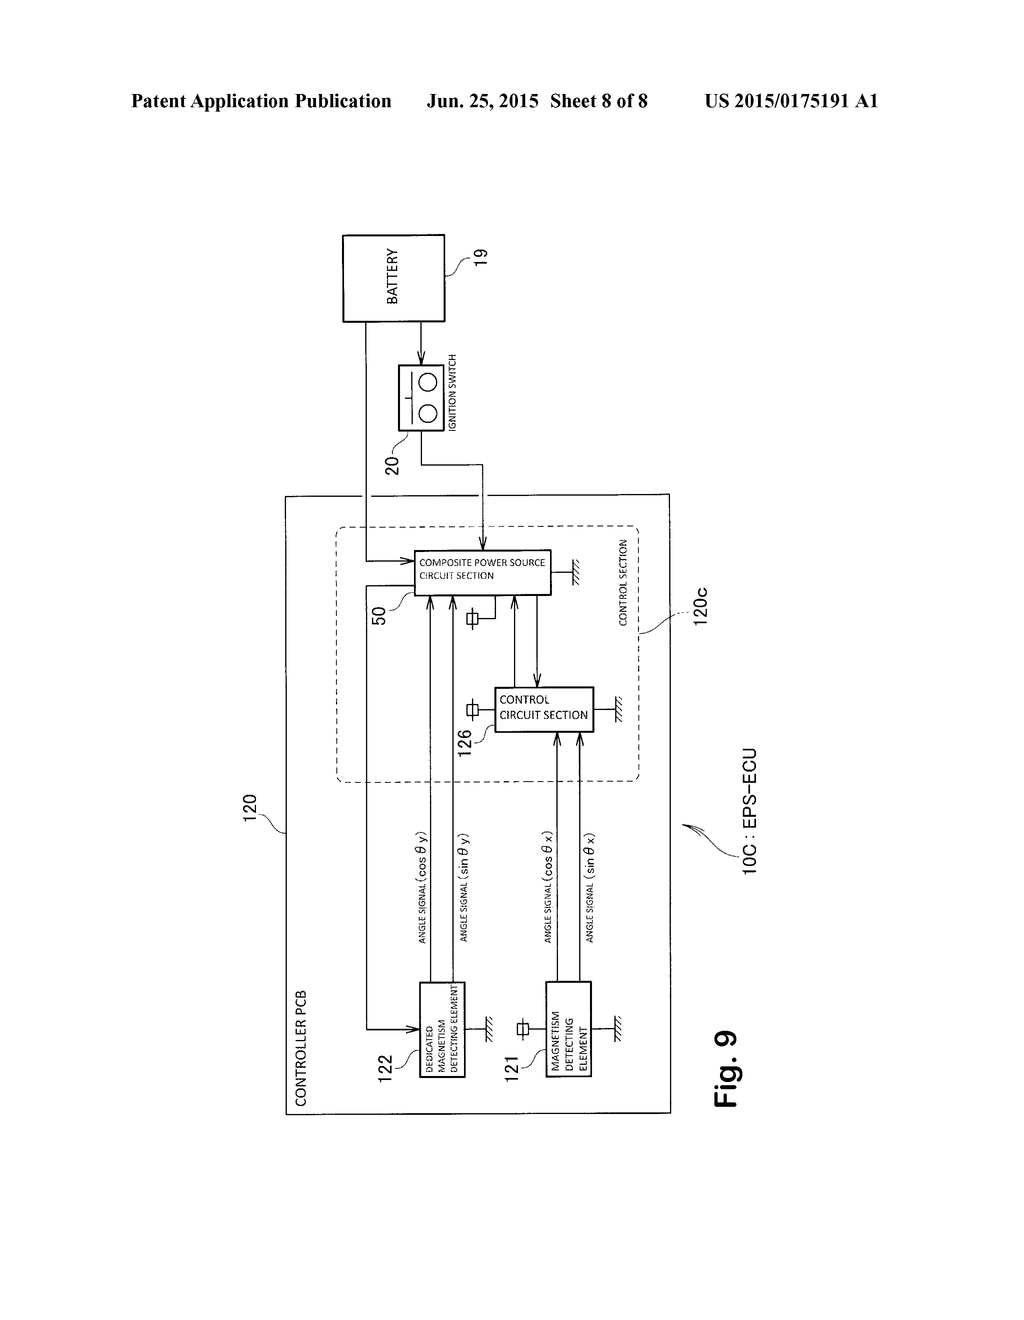 hight resolution of electronic control unit for electric power steering diagram schematic and image 09